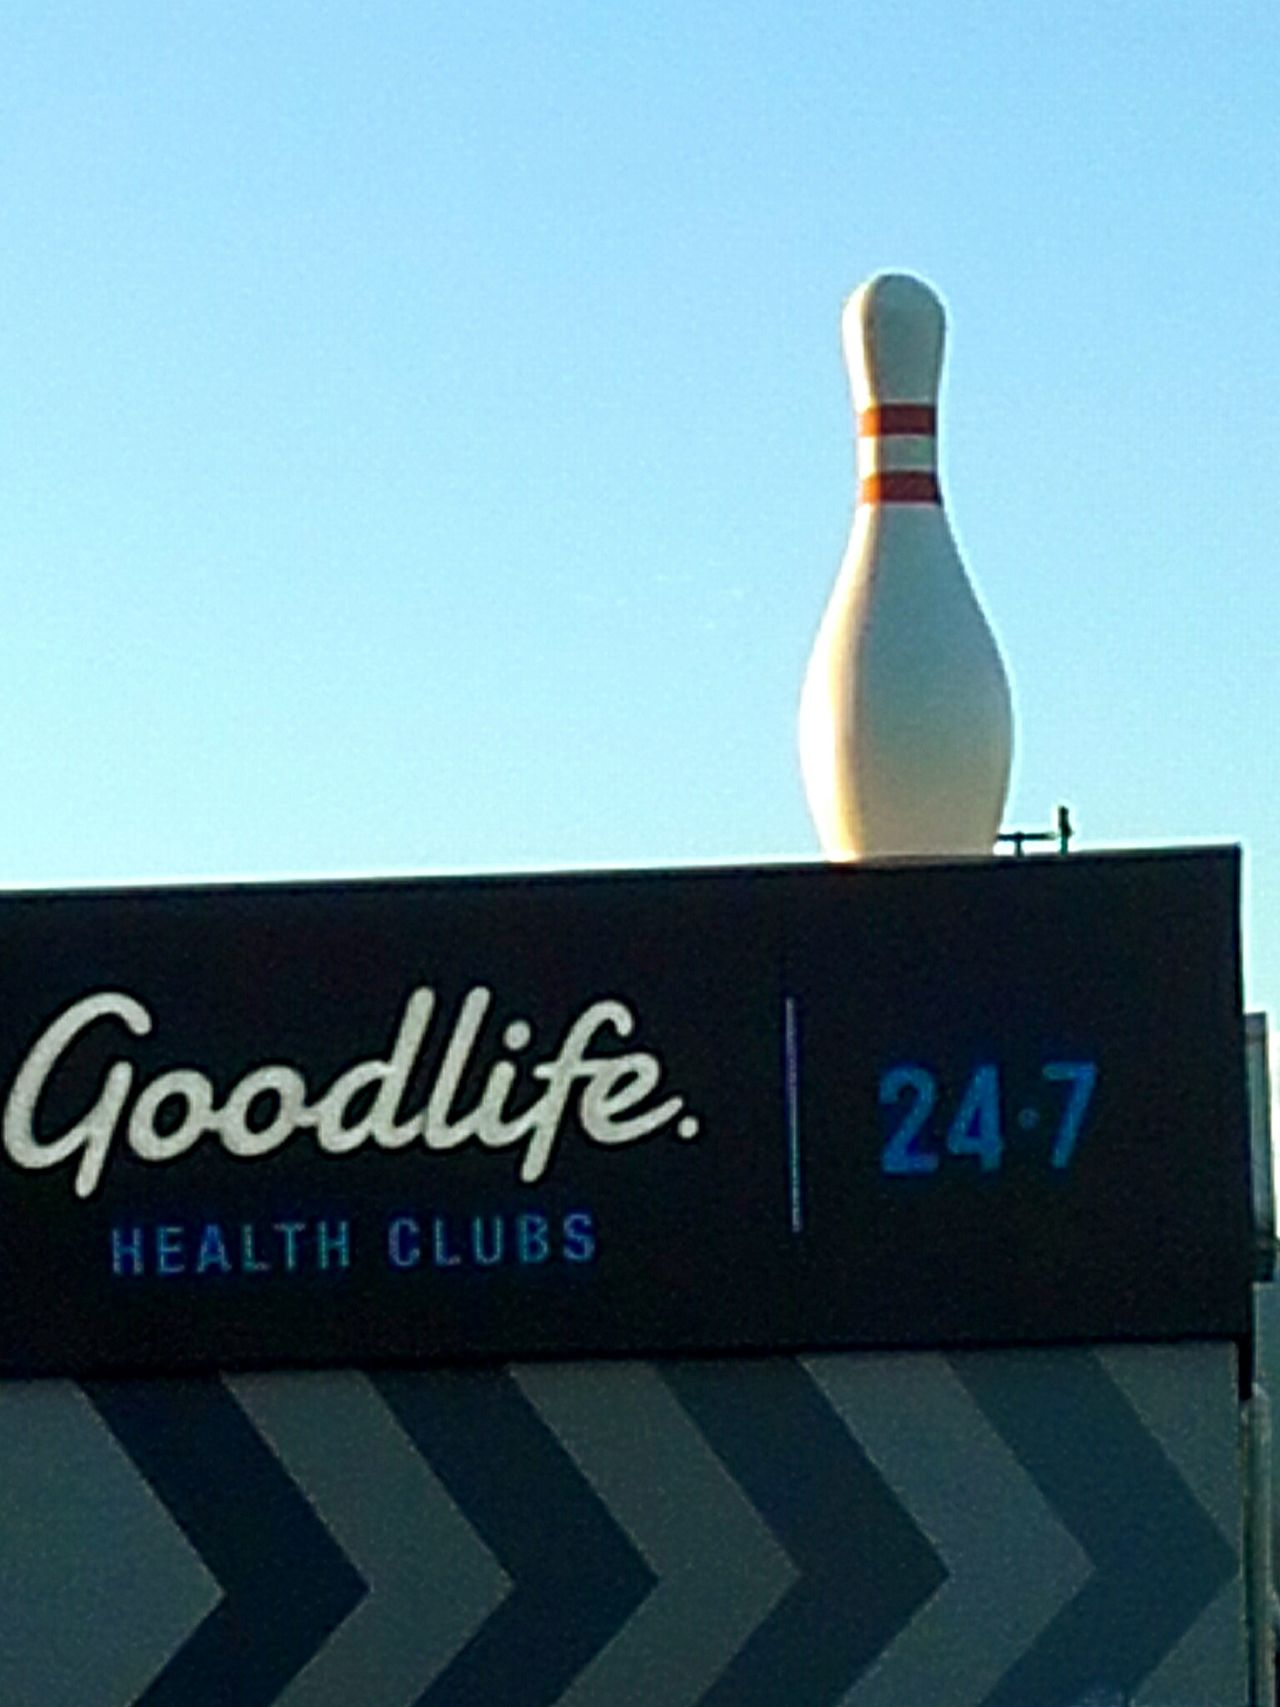 Ten Pin Bowling Big Signs Goodlife❤ Goodlife😍 On Top Of A Building Goodlife On The Roof Of A Building Signs, Signs, & More Signs SIGNS. Signs & More Signs BIG Good Life..😍 Big Things On The Roof Good Life Signage Signstalkers Signs SIGN. Taking Pictures Signs_collection Signporn Sign Check This Out Taking Photos